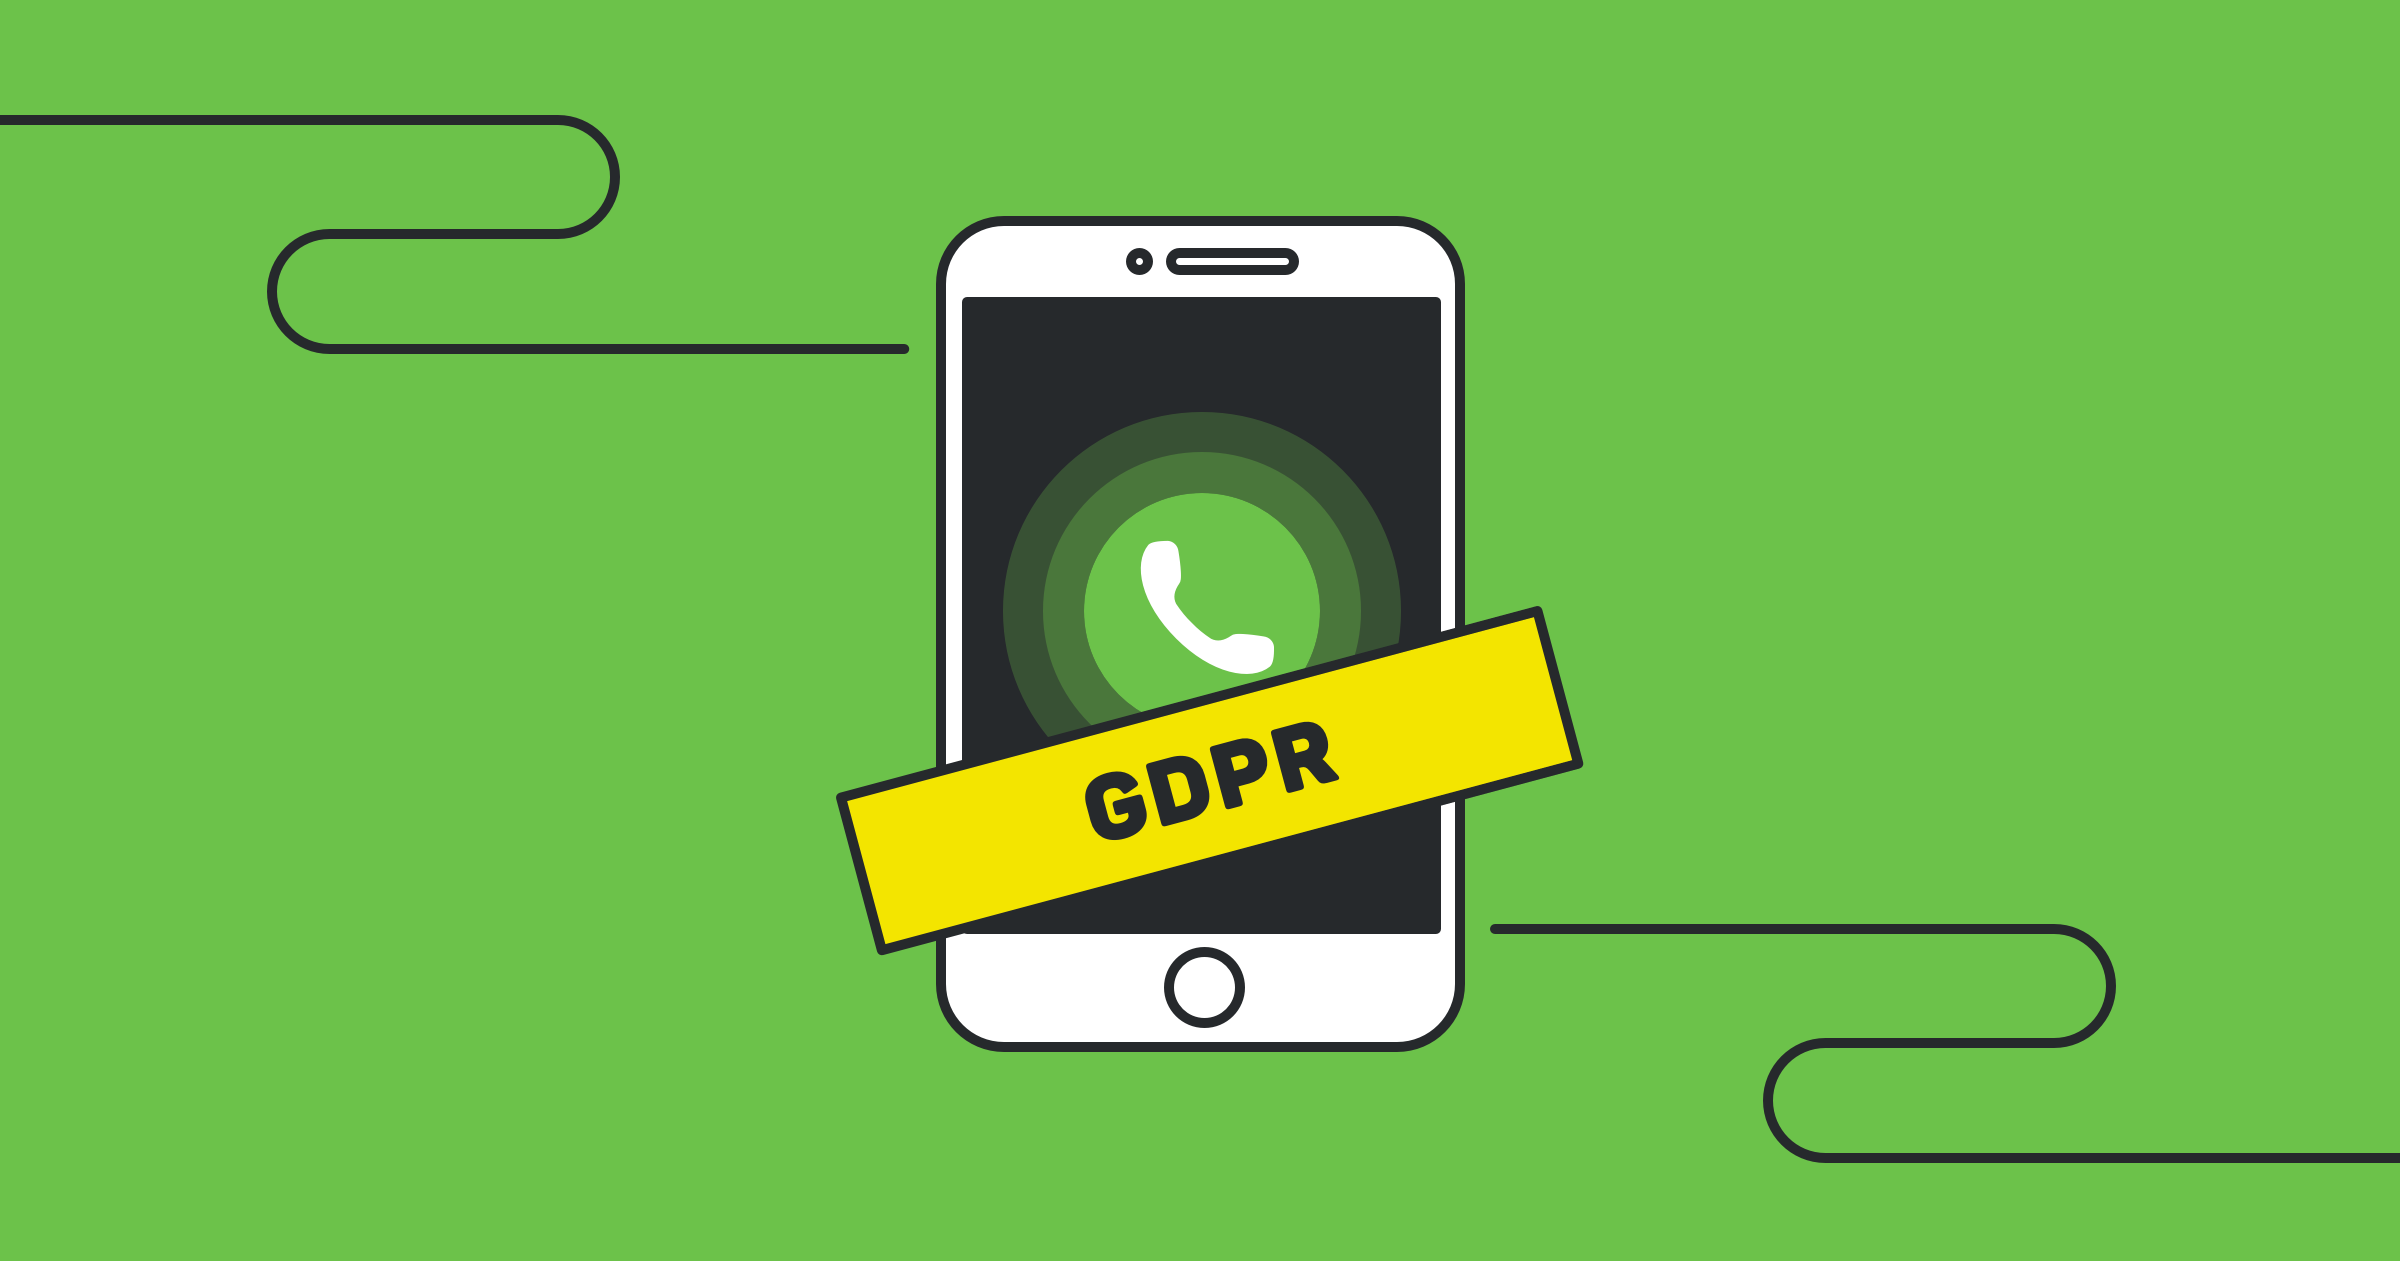 Call Me, Maybe: How GDPR Will Change Cold Calling